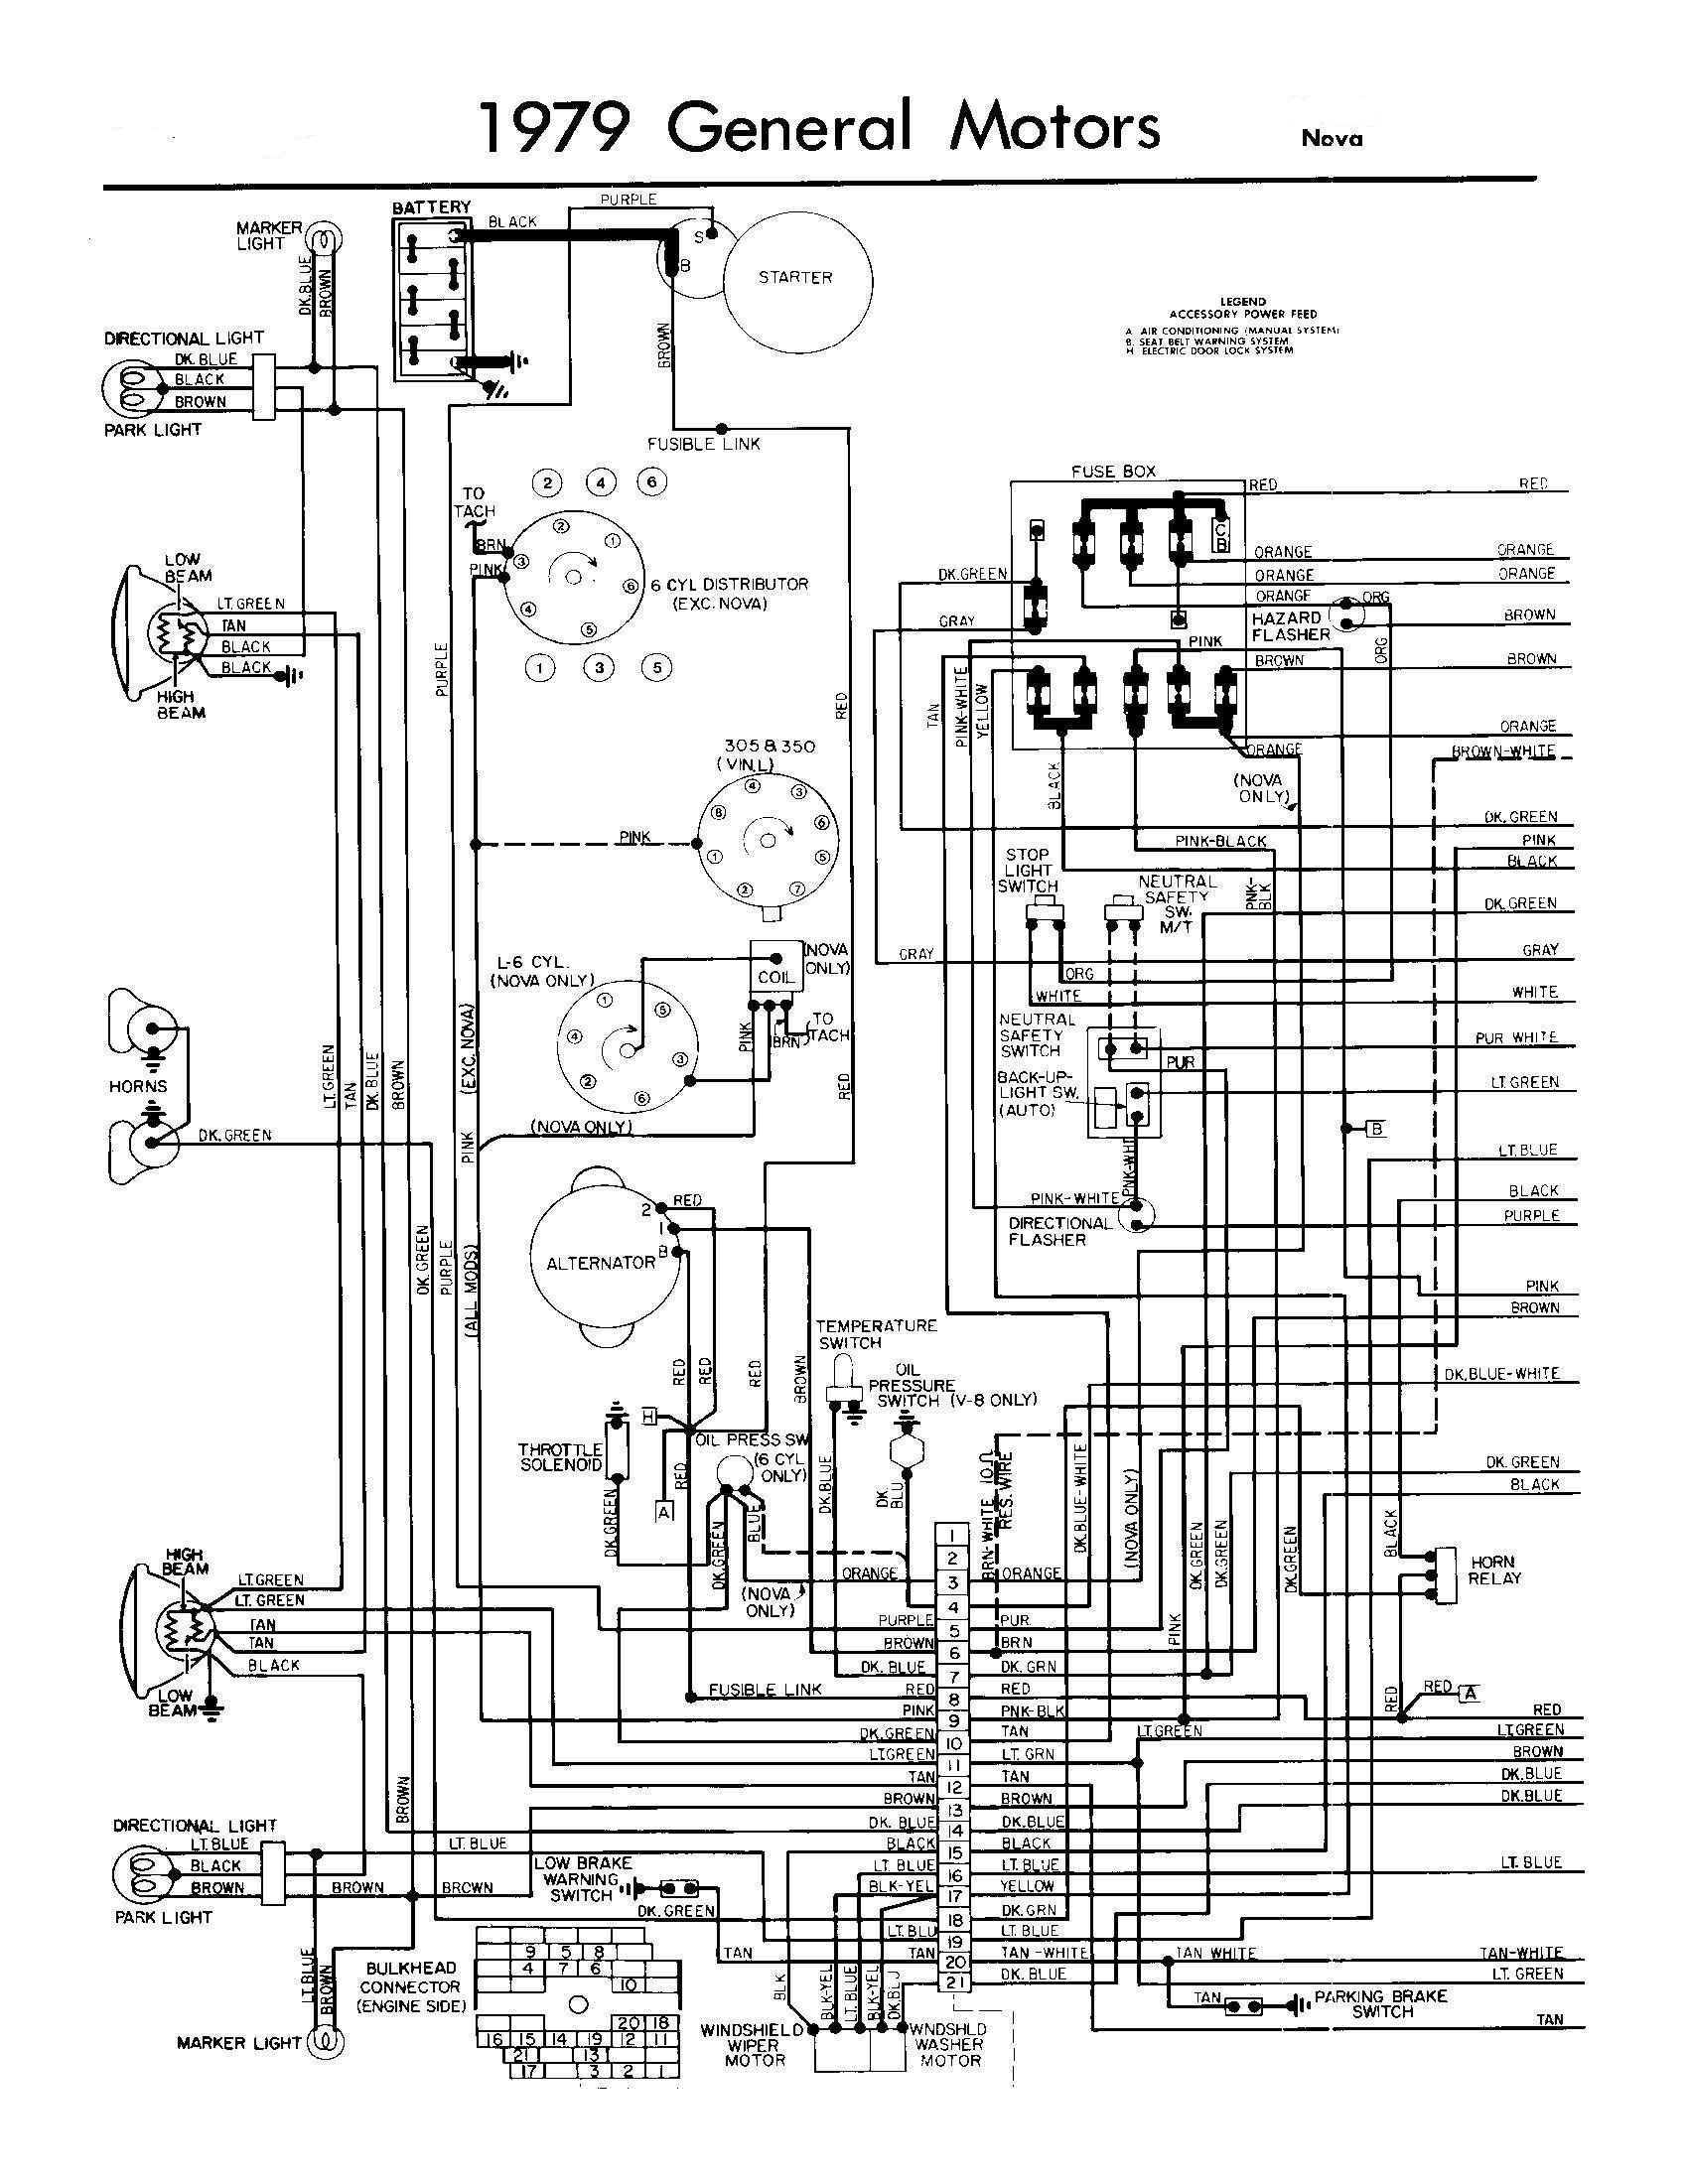 1972 camaro fuse box diagram wiring schematic custom wiring diagram u2022 rh littlewaves co